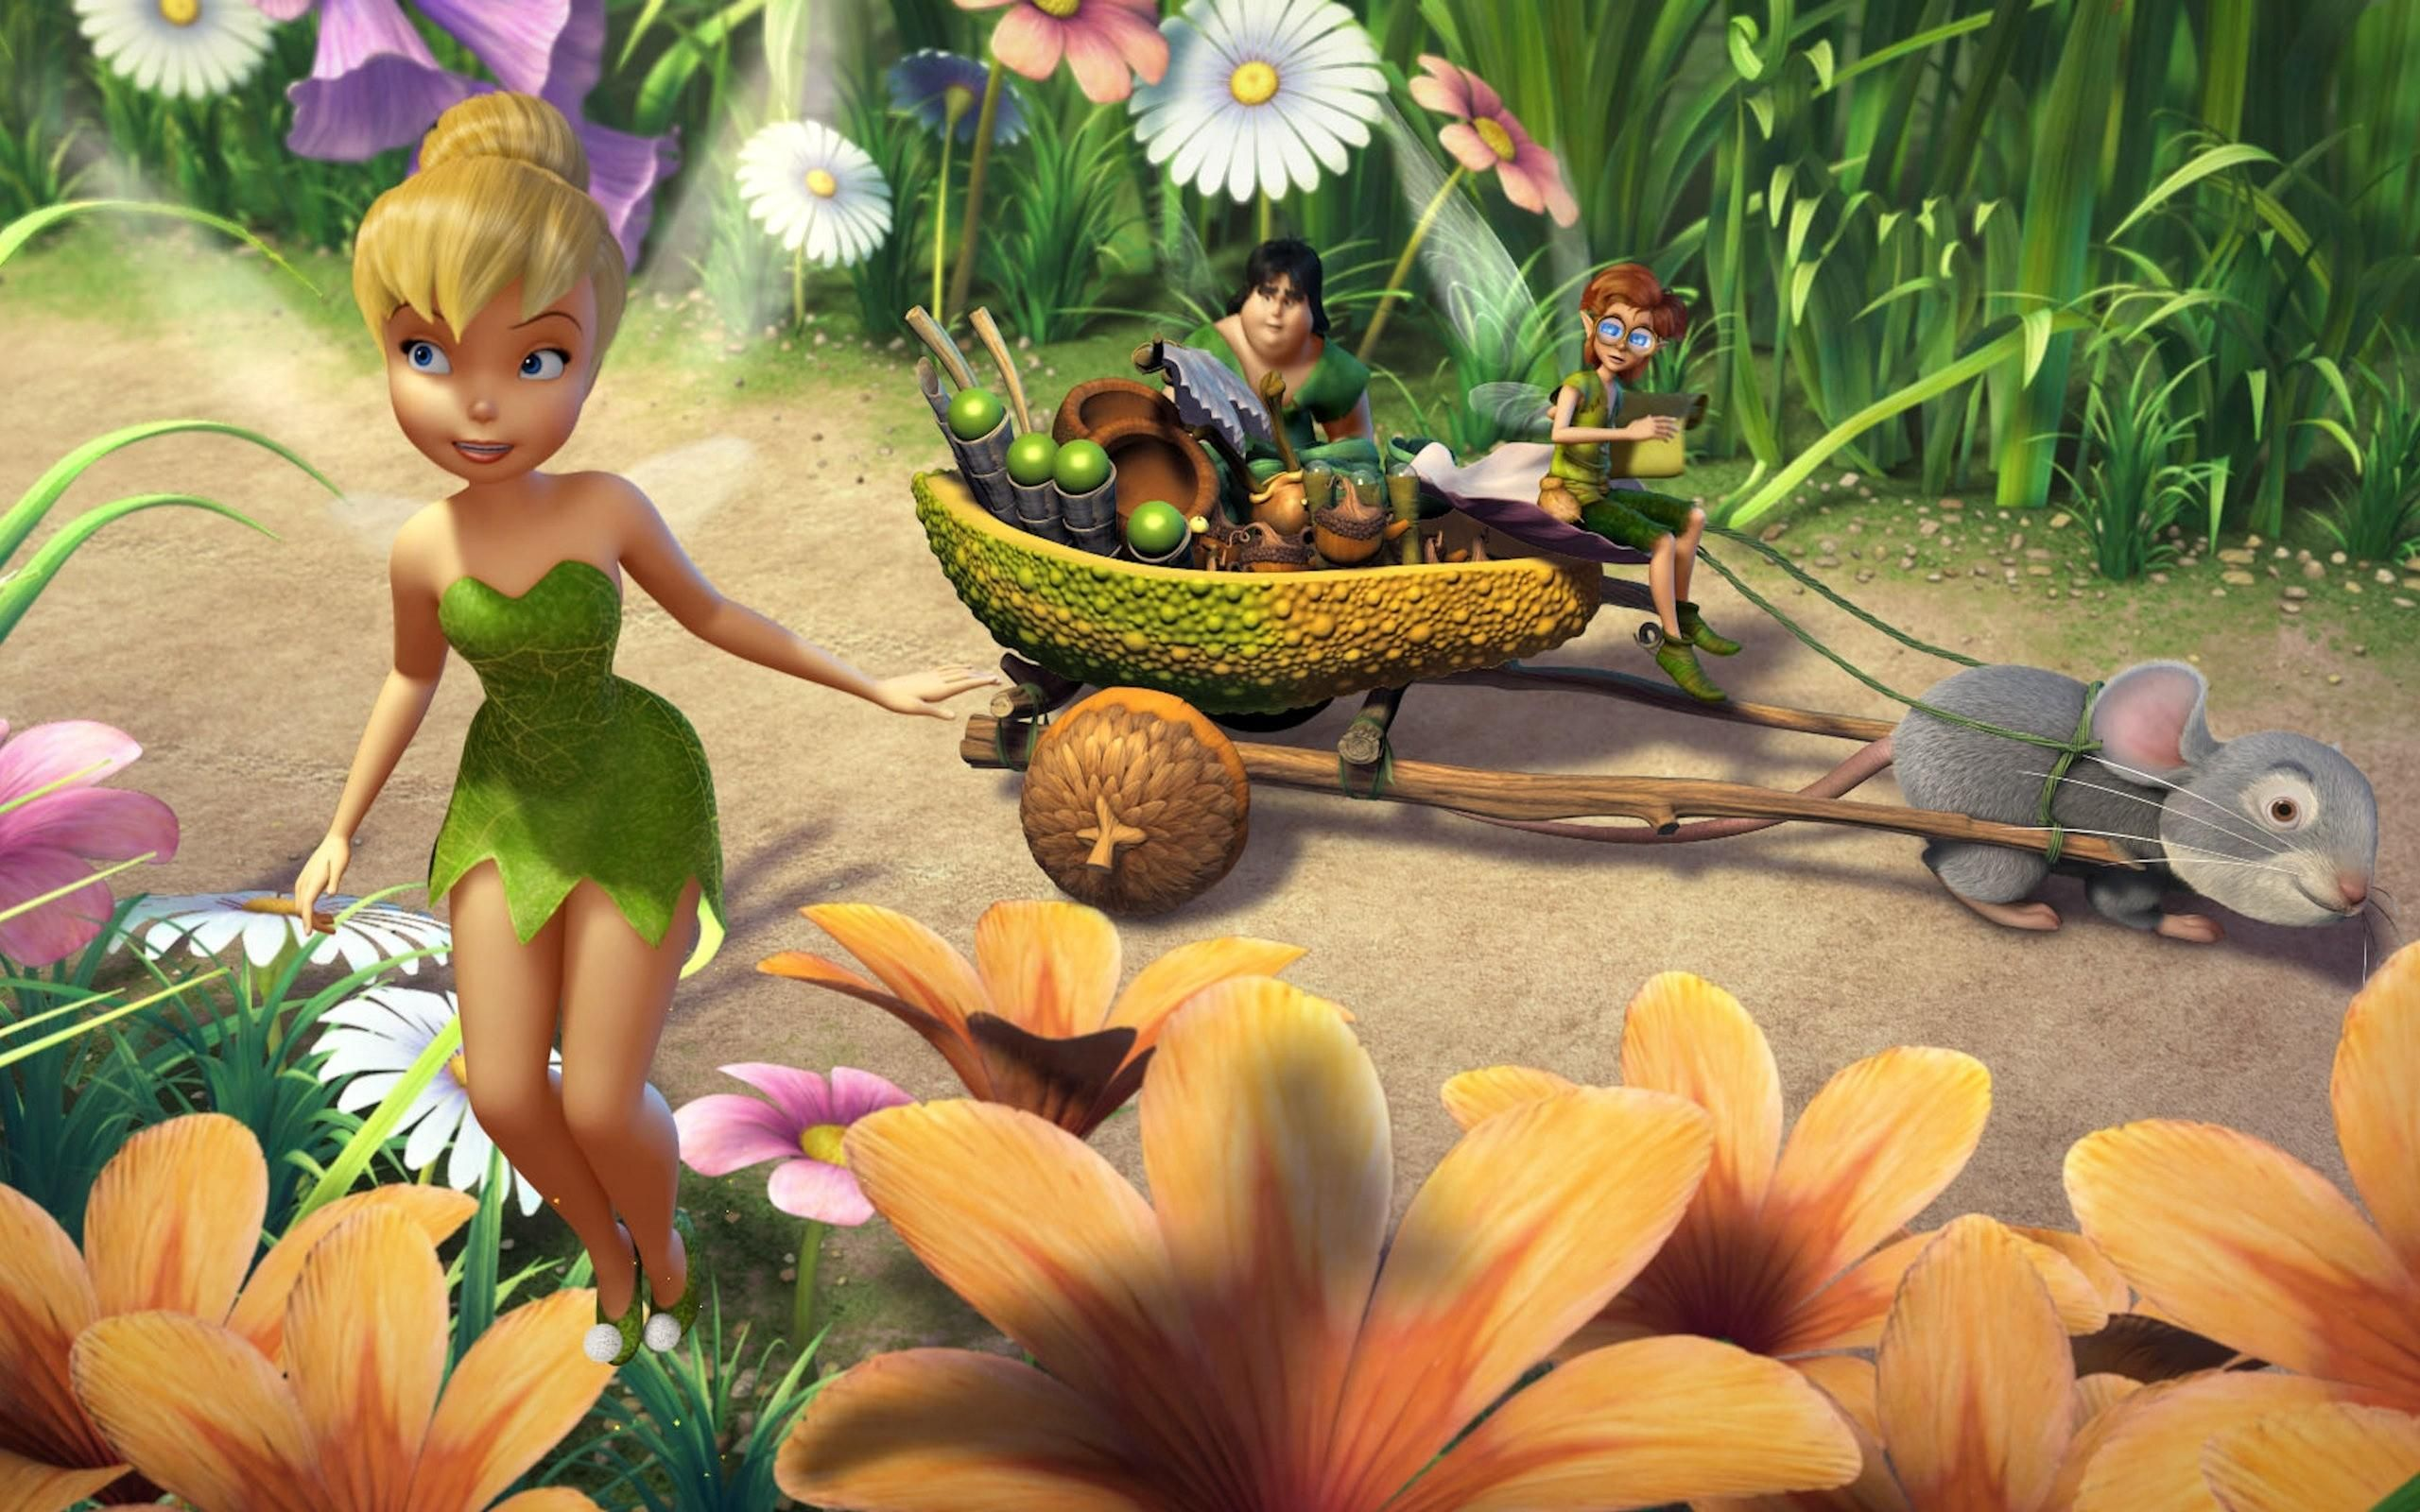 Download Free Tinkerbell Wallpapers For Your Mobile Phone Most